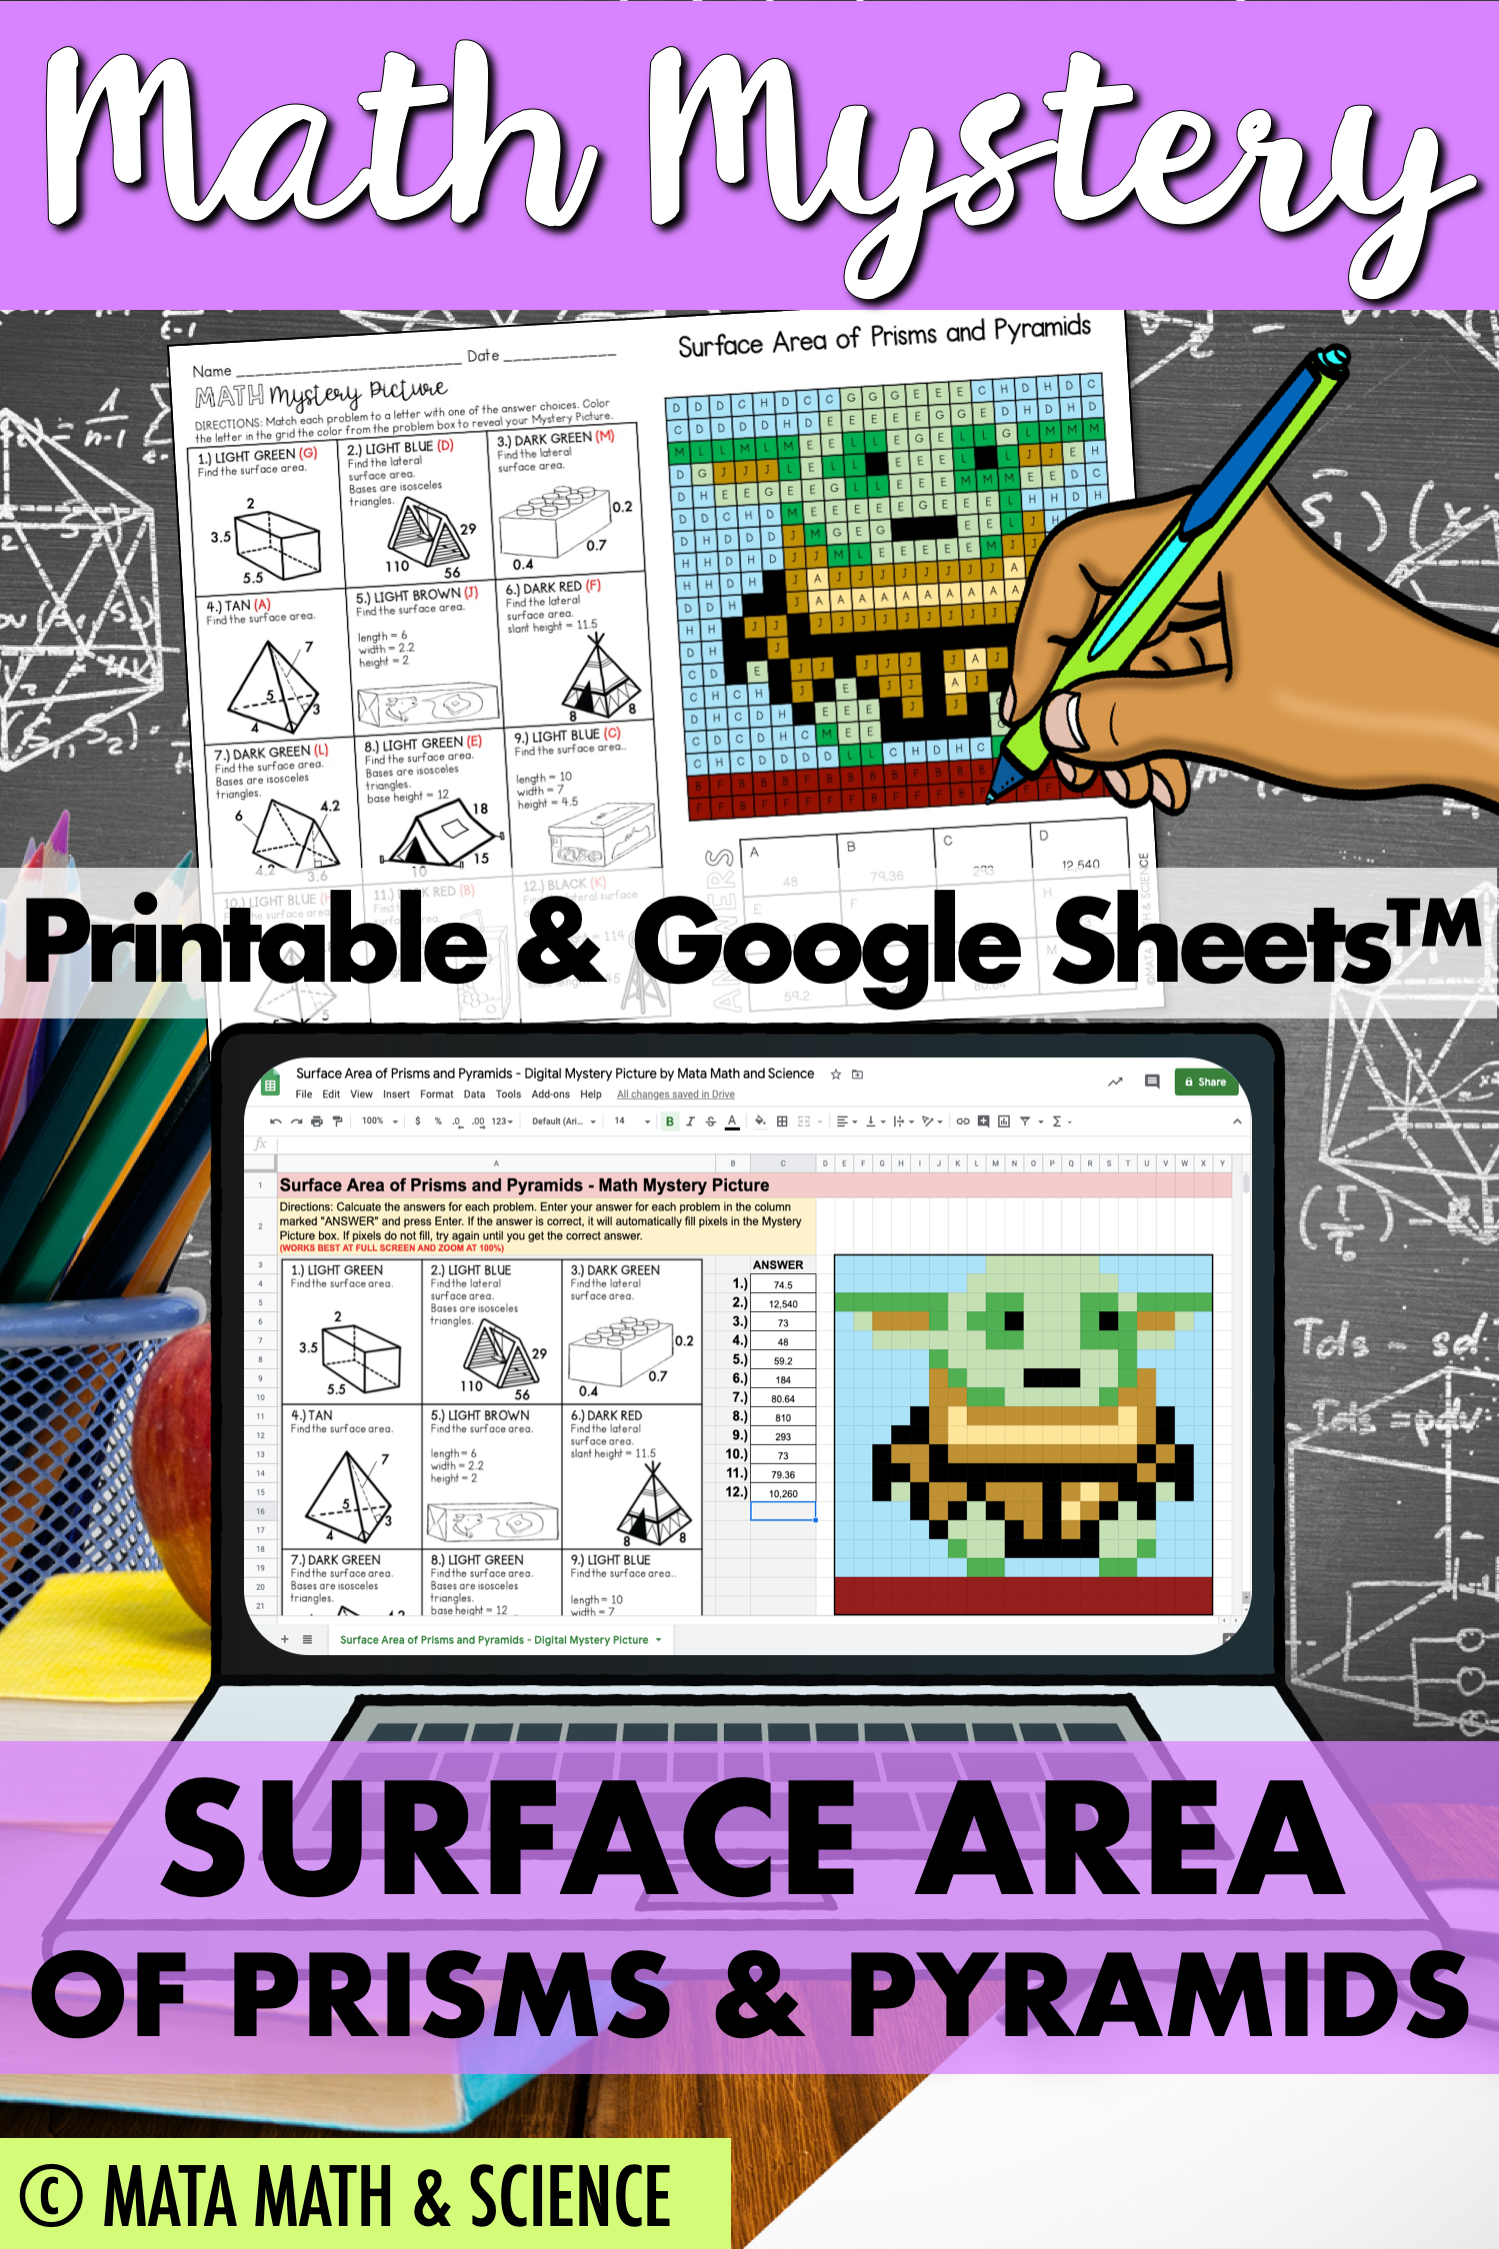 Surface Area Of Prisms And Pyramids Math Mystery Picture